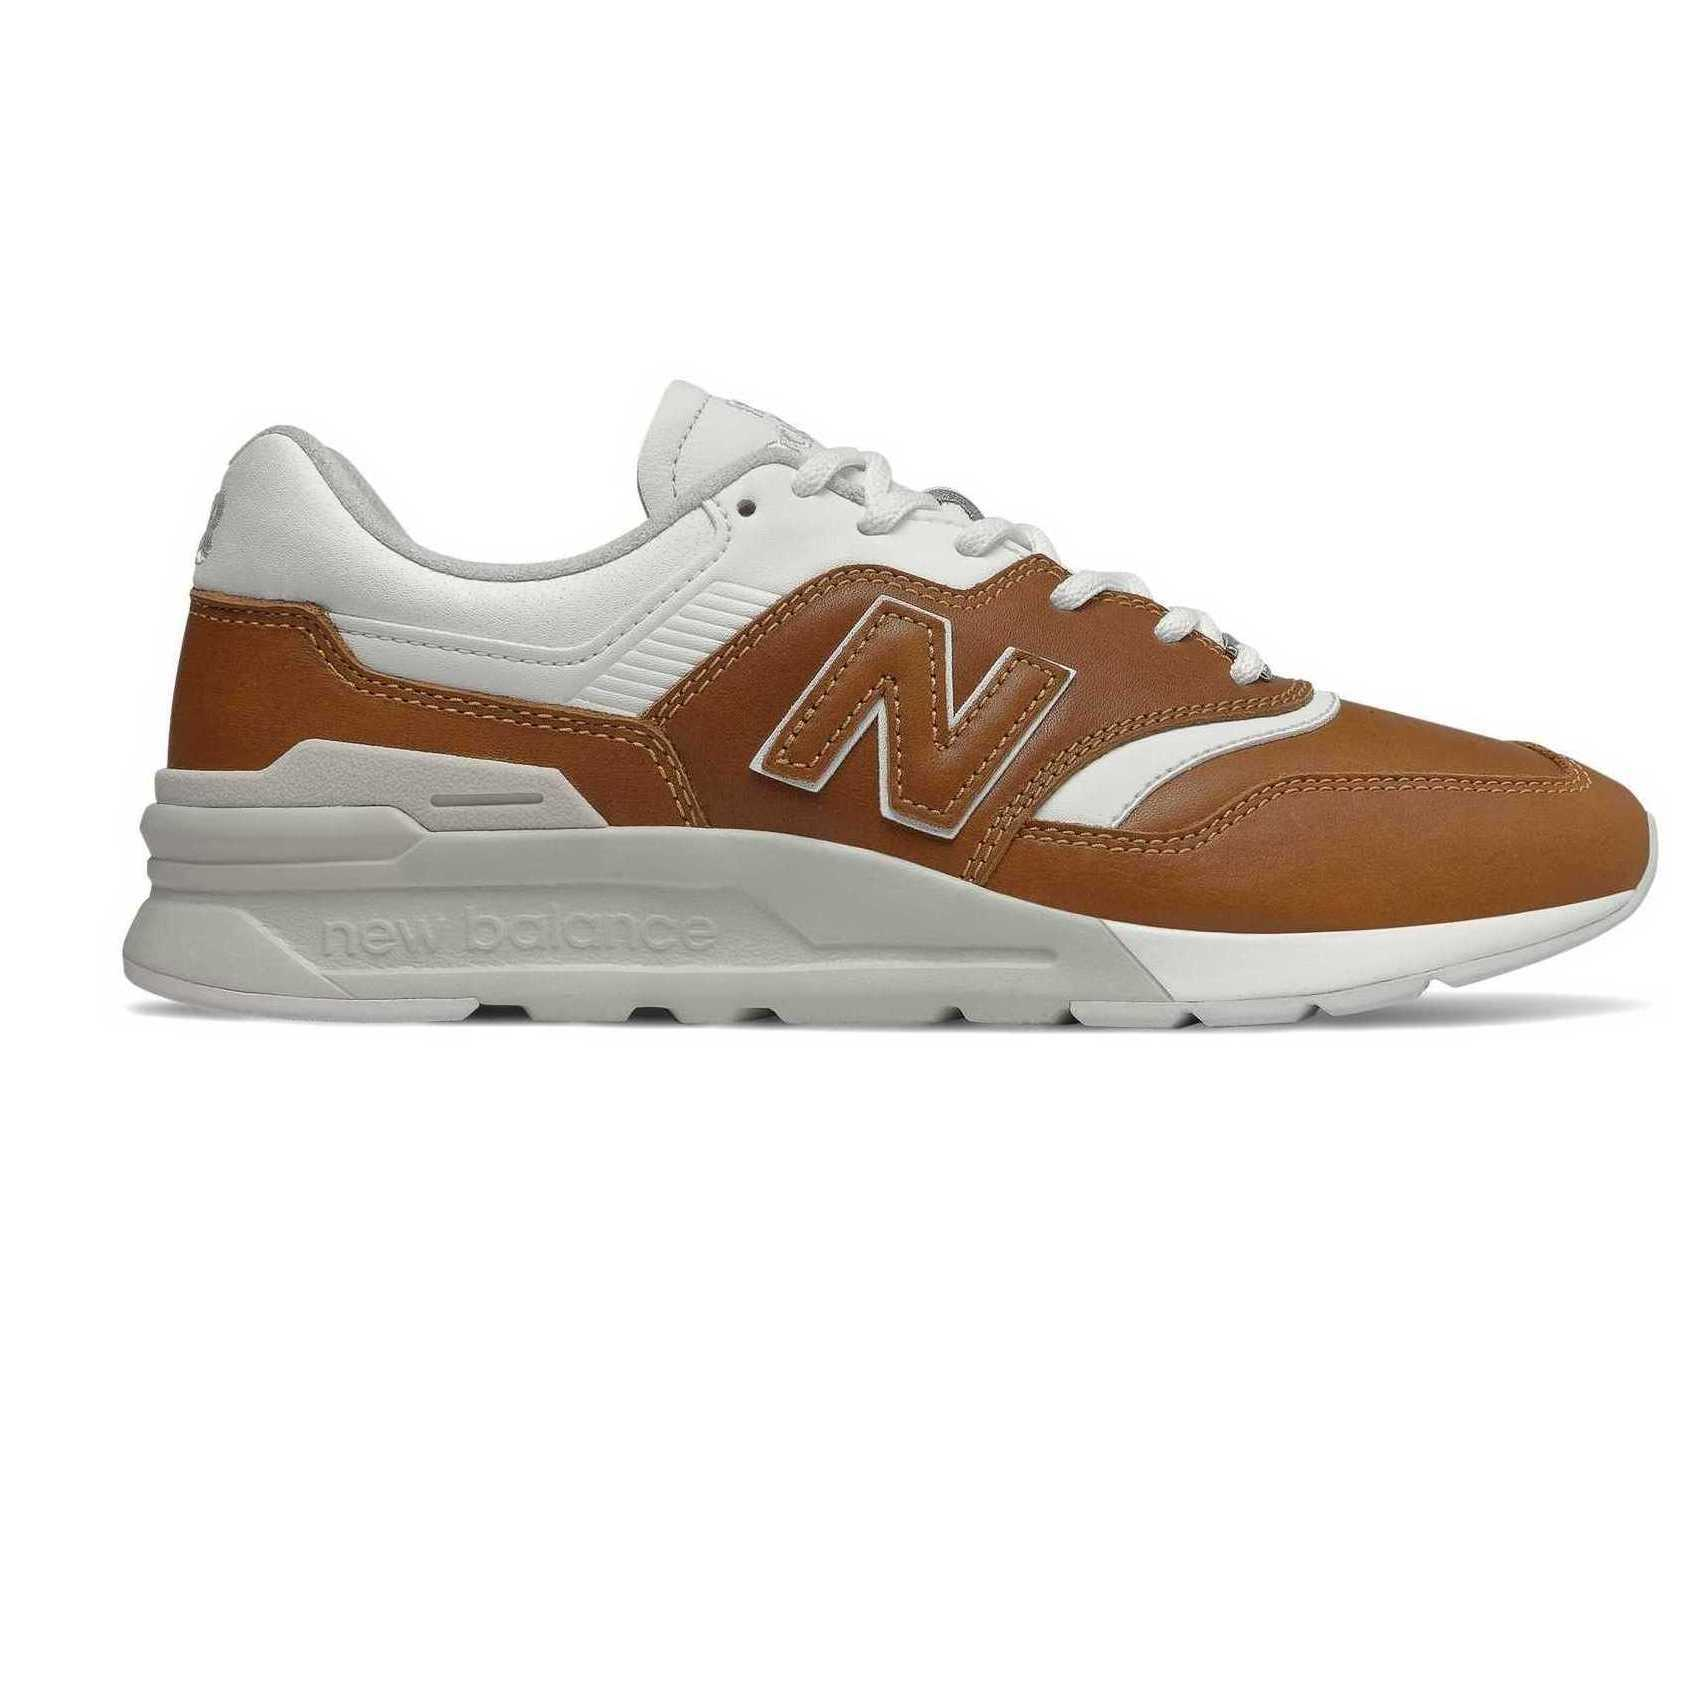 ZAPATILLAS NEW BALANCE 997H ALMOND WITH WHITE